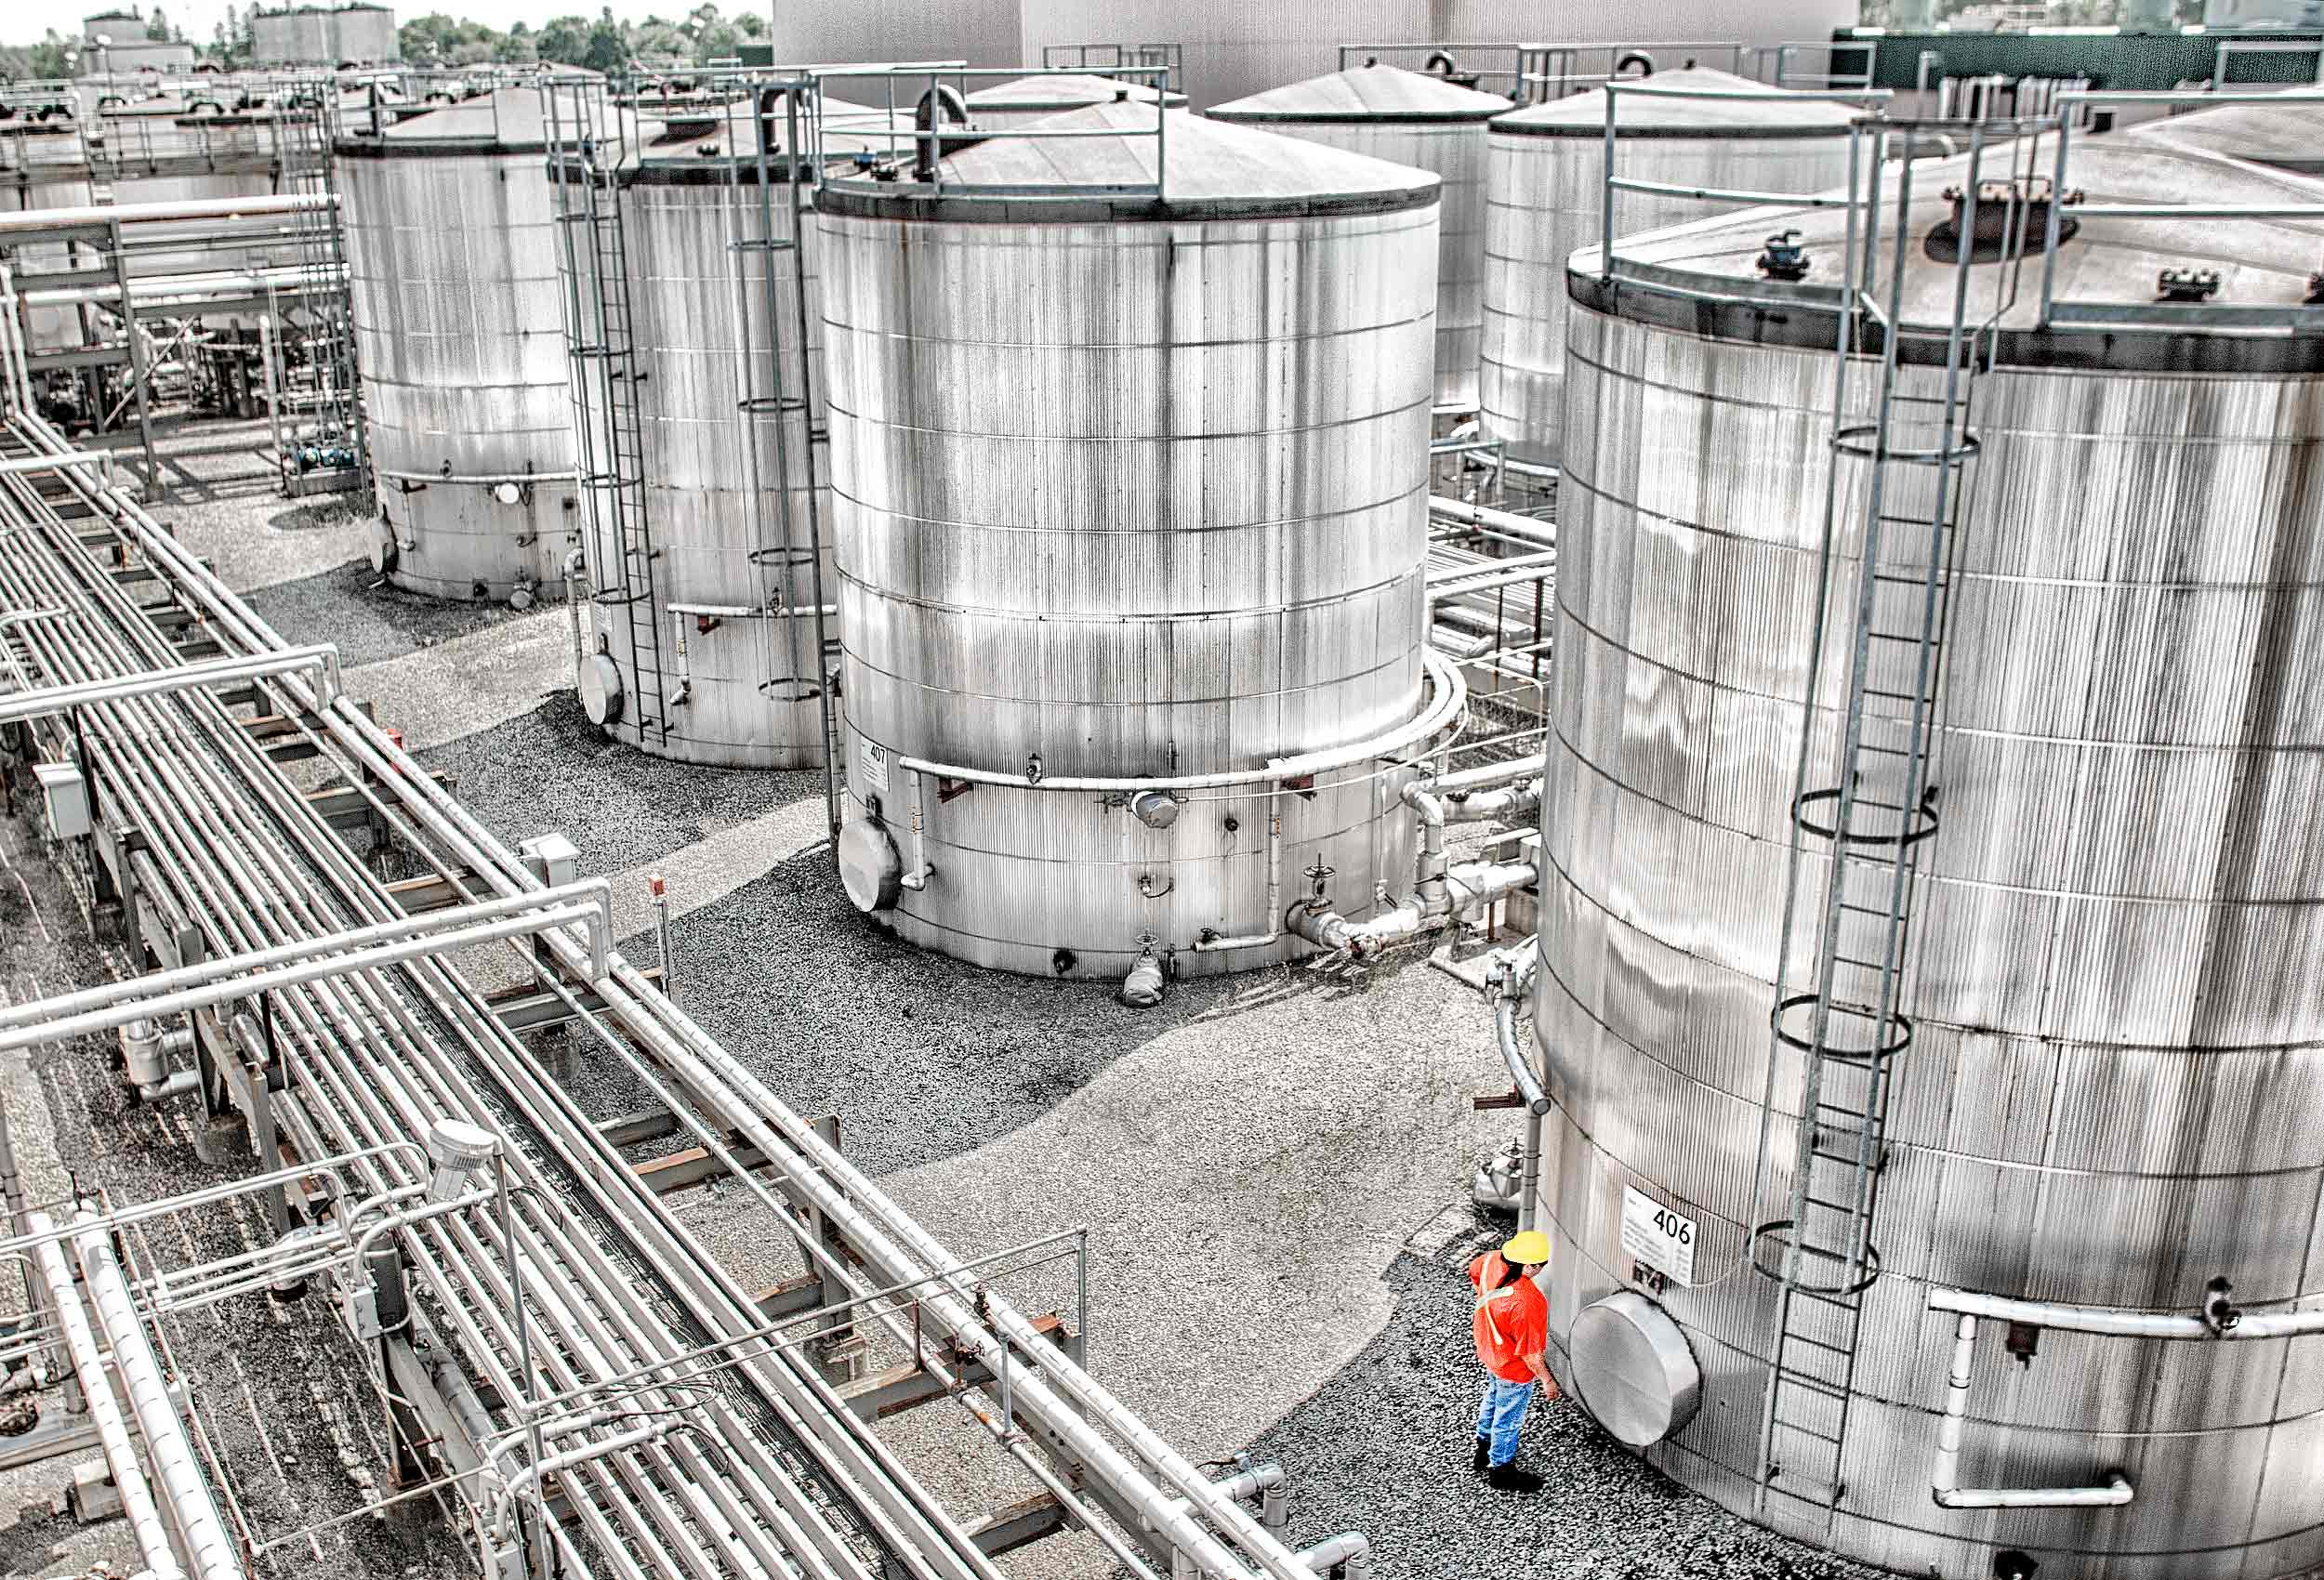 a-shell-canada-employee-inspecting-industrial-oil-storage-facilities-in-brockville-ontario-canada